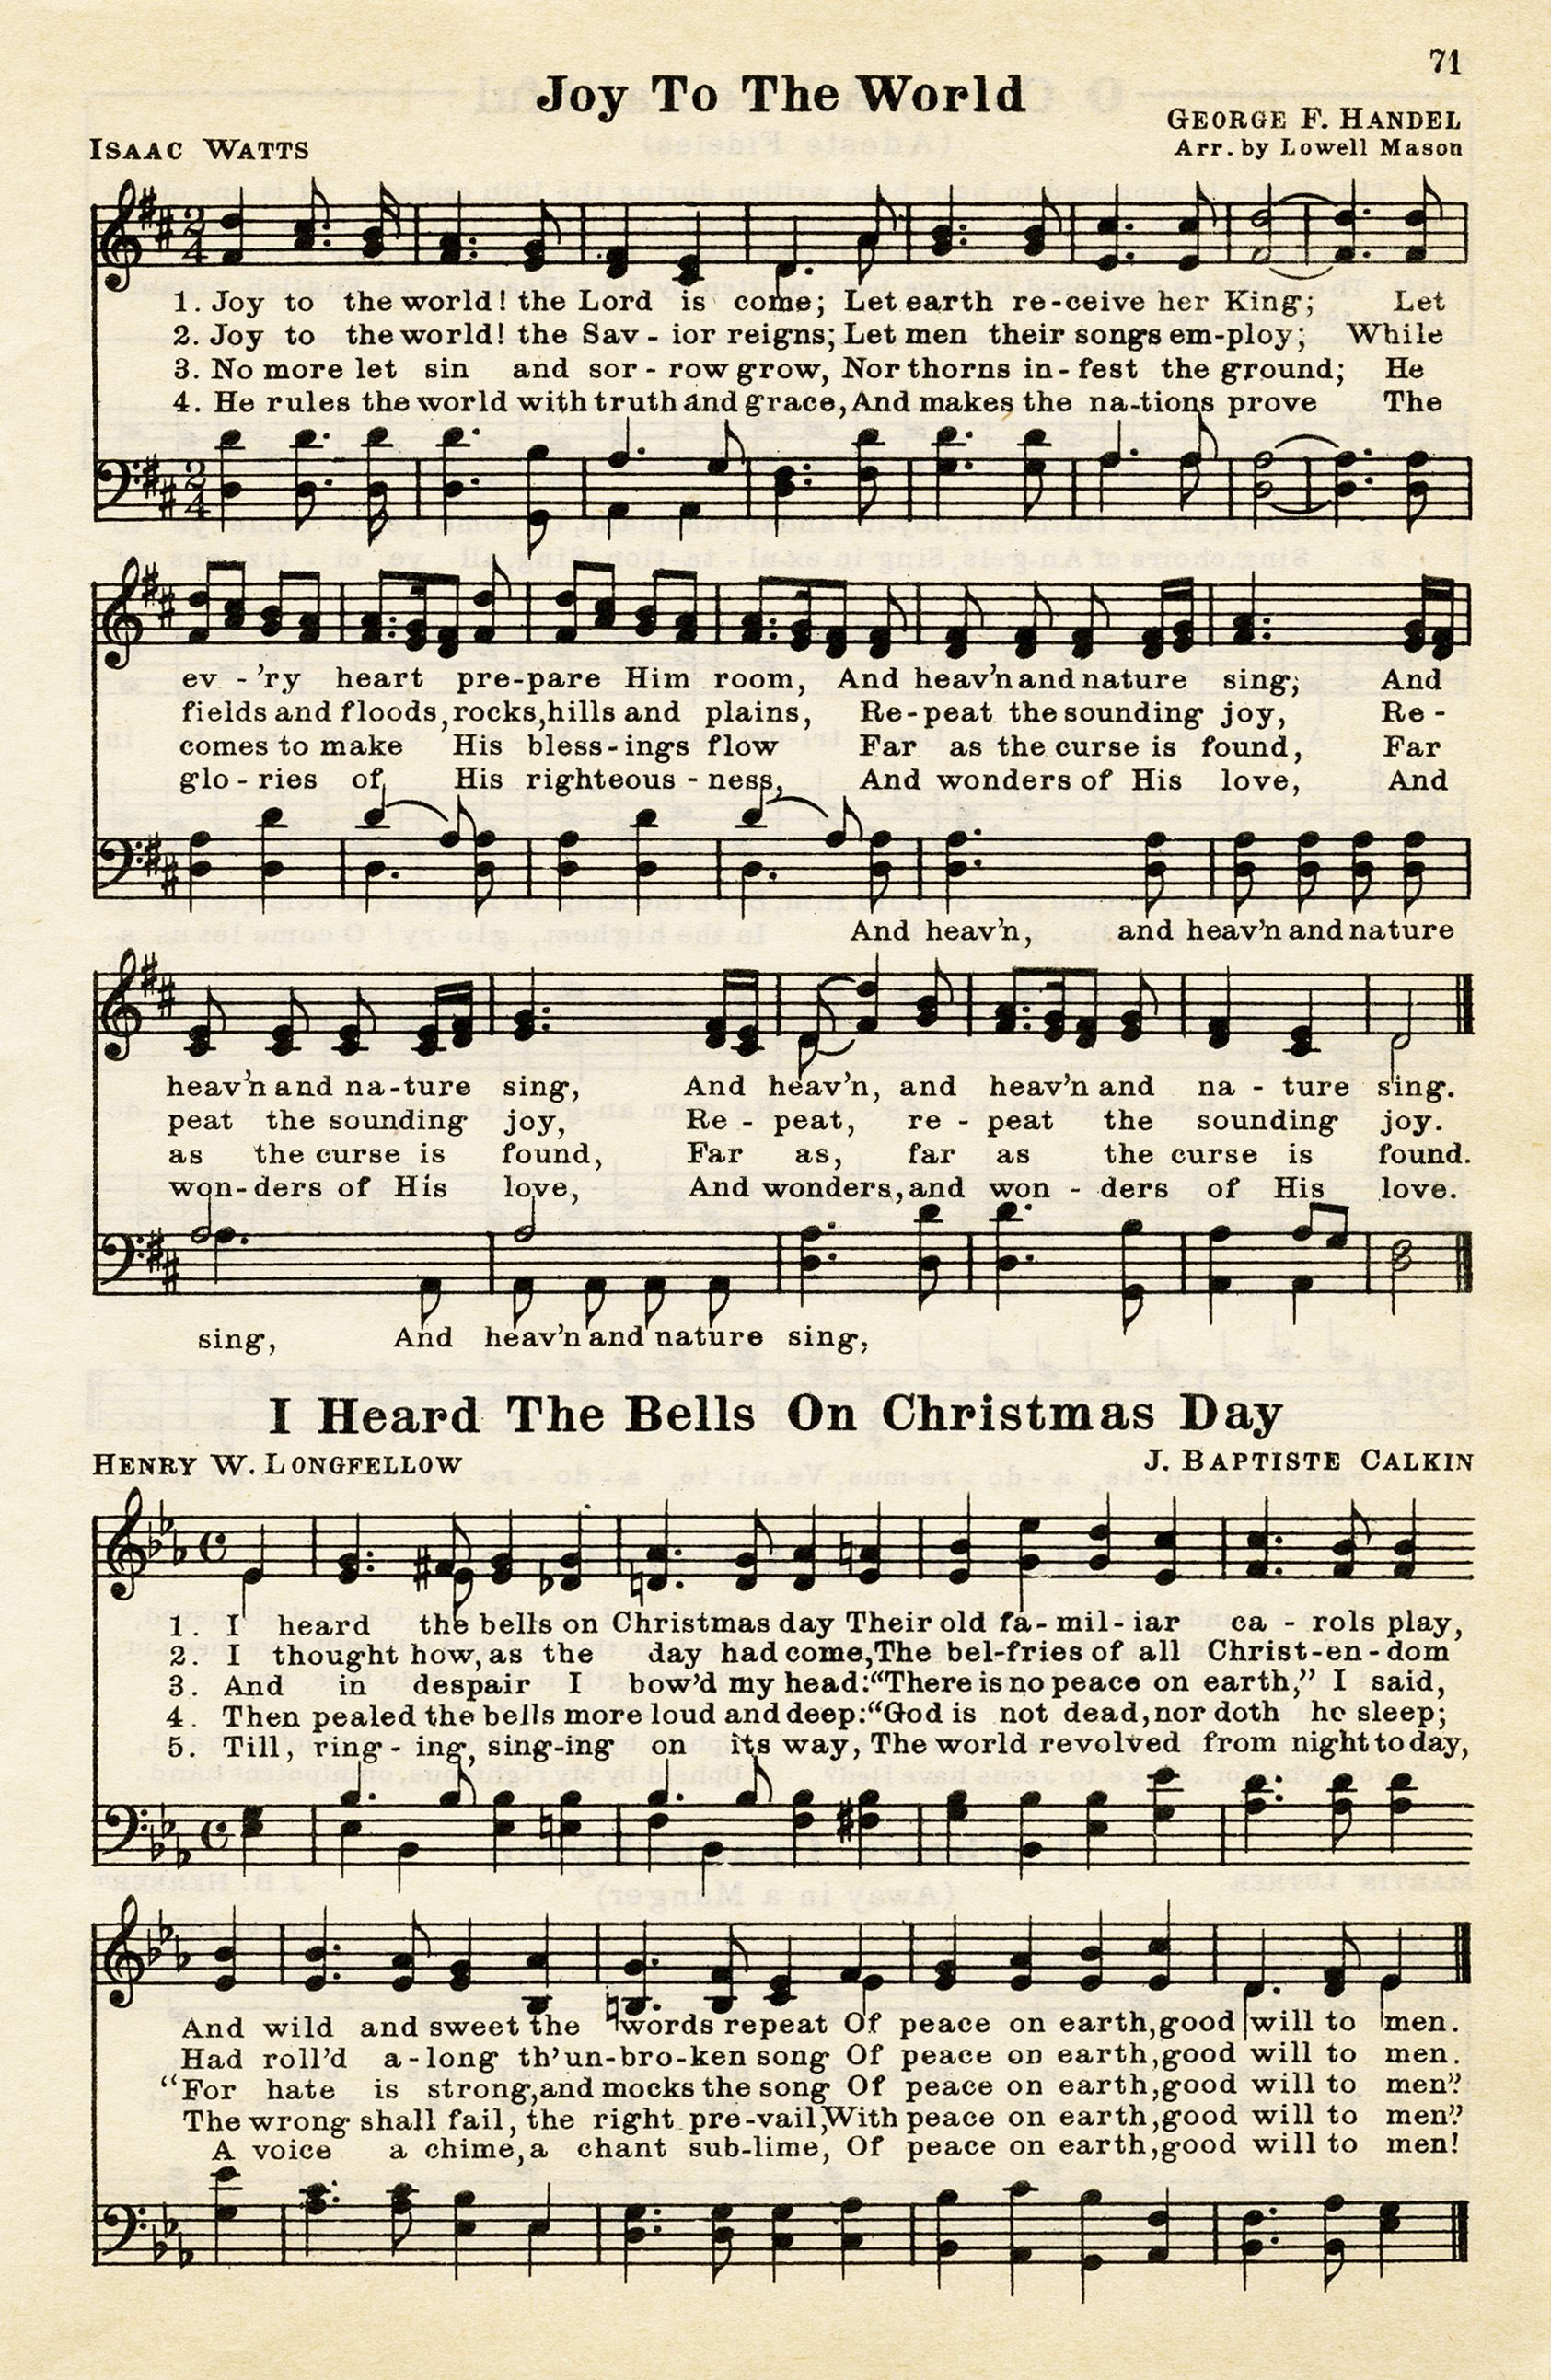 joy to the world, heard the bells on christmas day